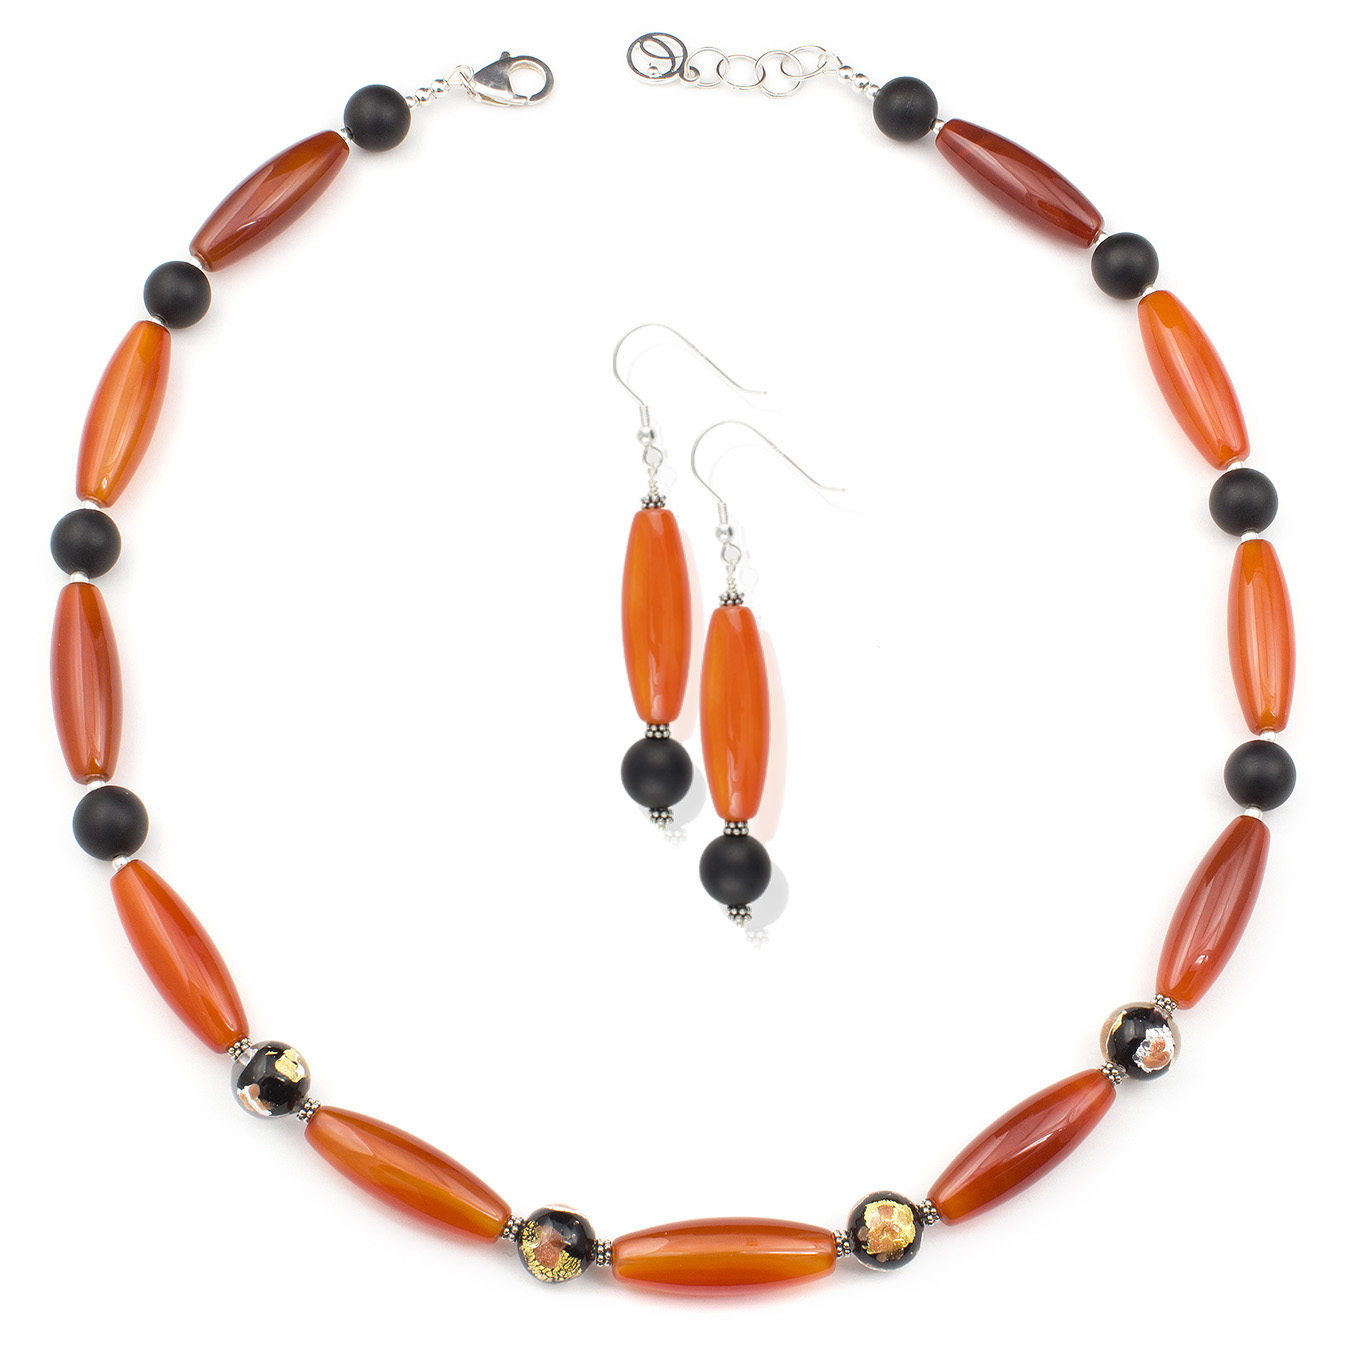 Personalized necklace with jasper, agate, quartz and murano gemstones